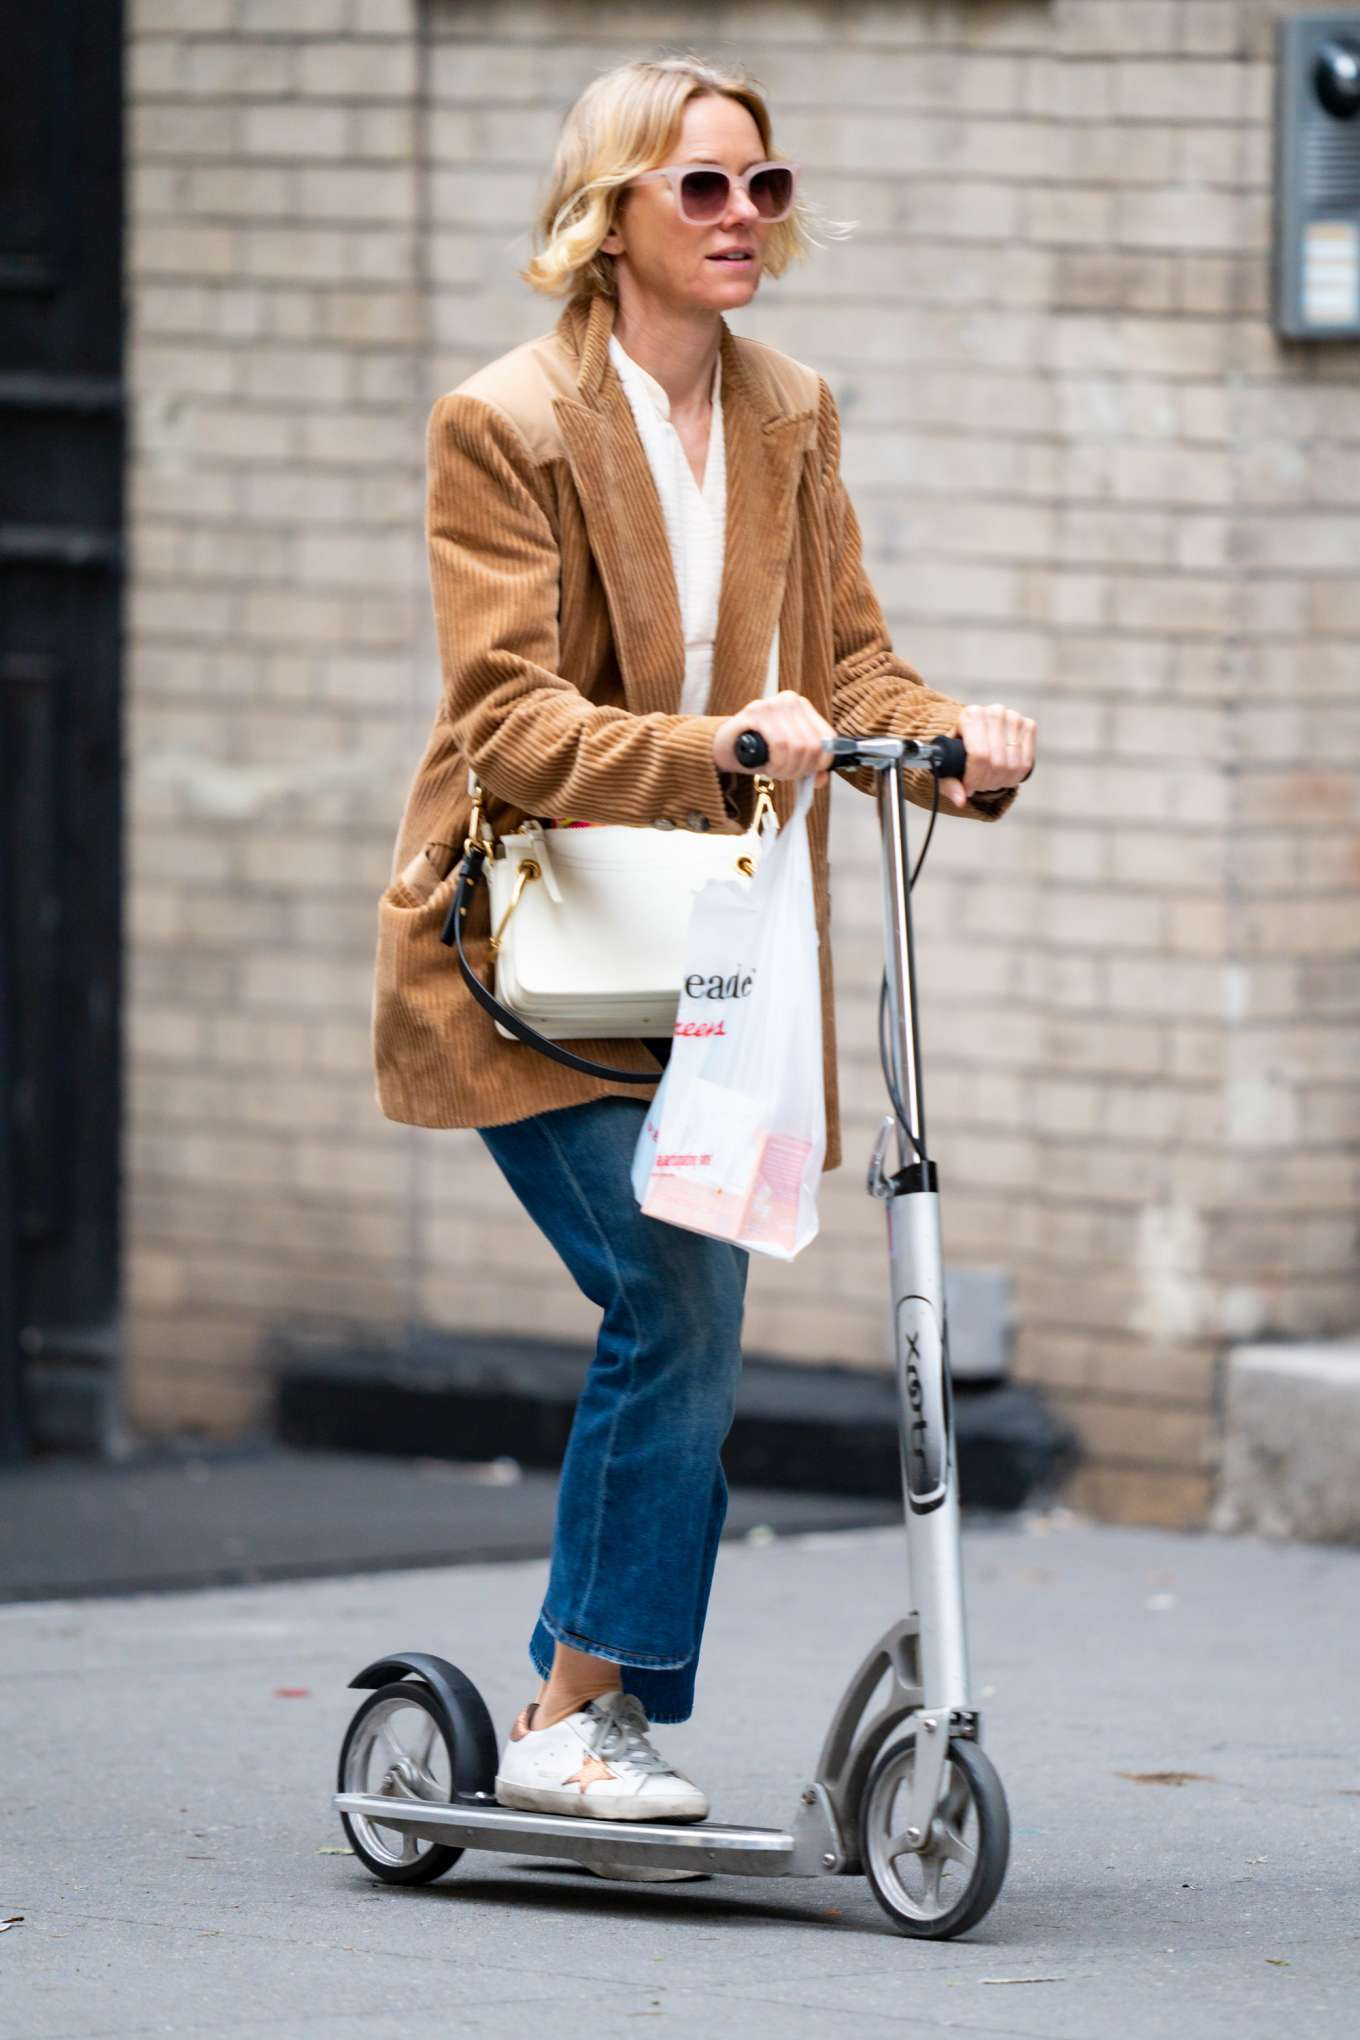 Naomi Watts 2020 : Naomi Watts – Out doing errands on a scooter in New York City-02